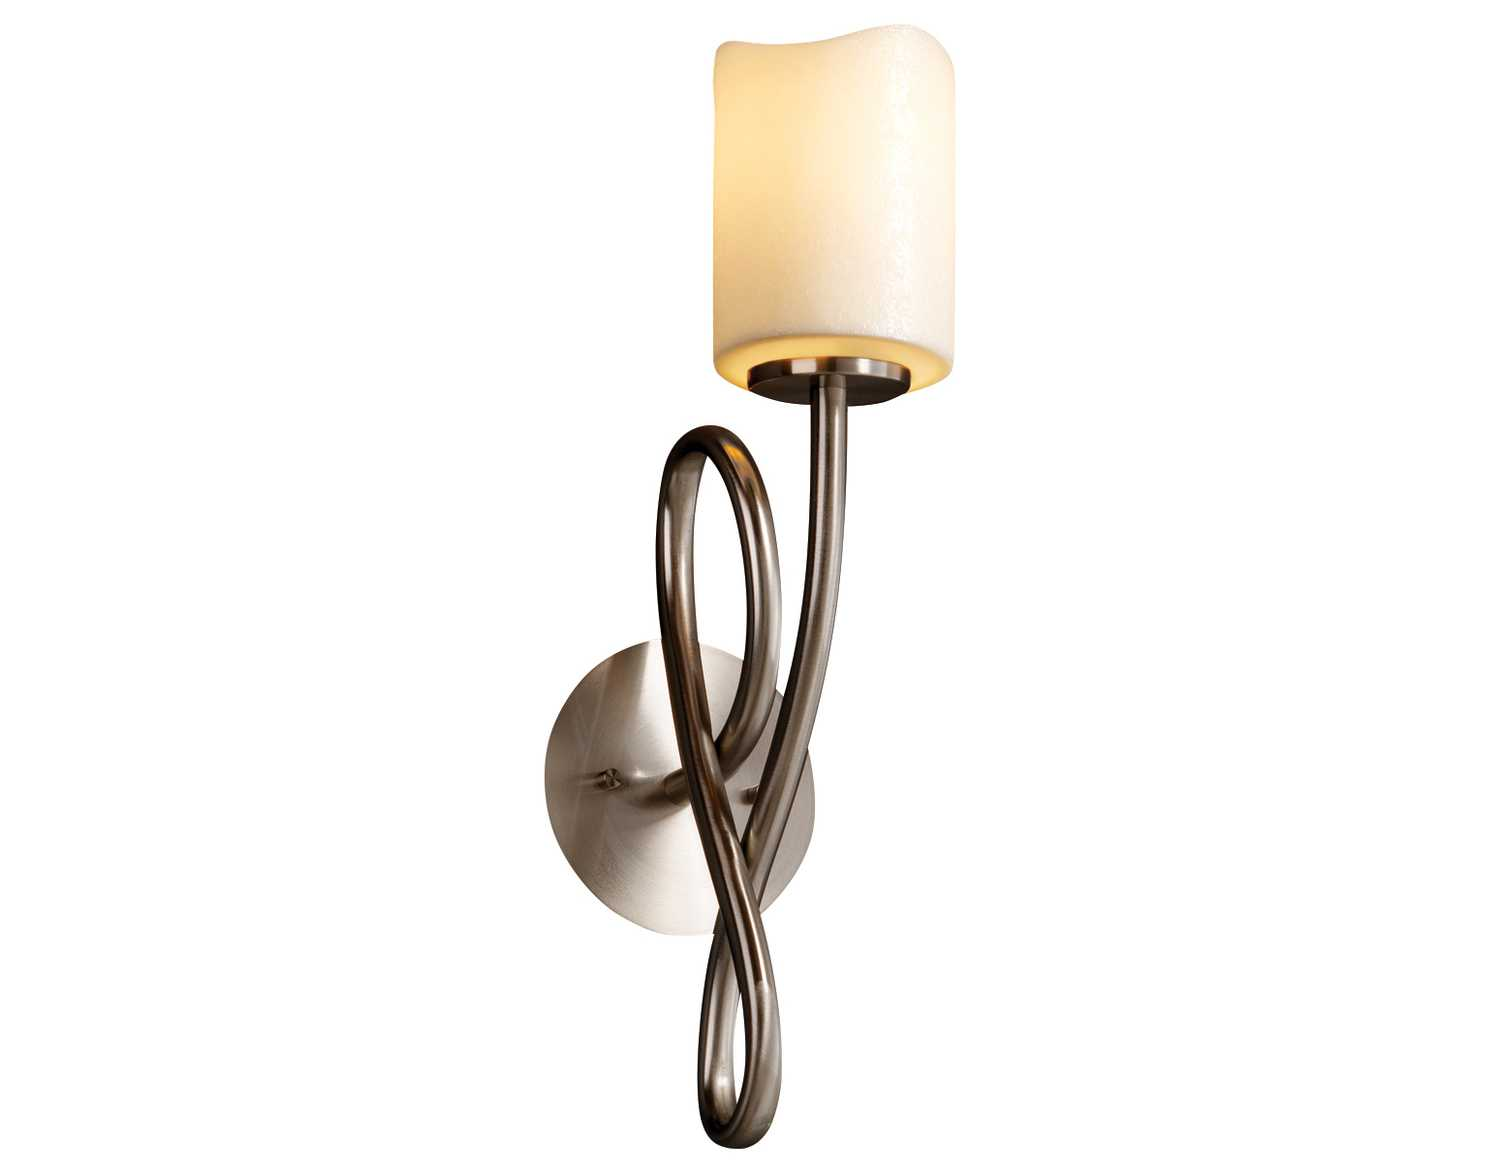 Wall Sconce Faux Candle : Justice Design Group Candlearia Capellini Faux Candle Resin Wall Sconce JDCNDL8911